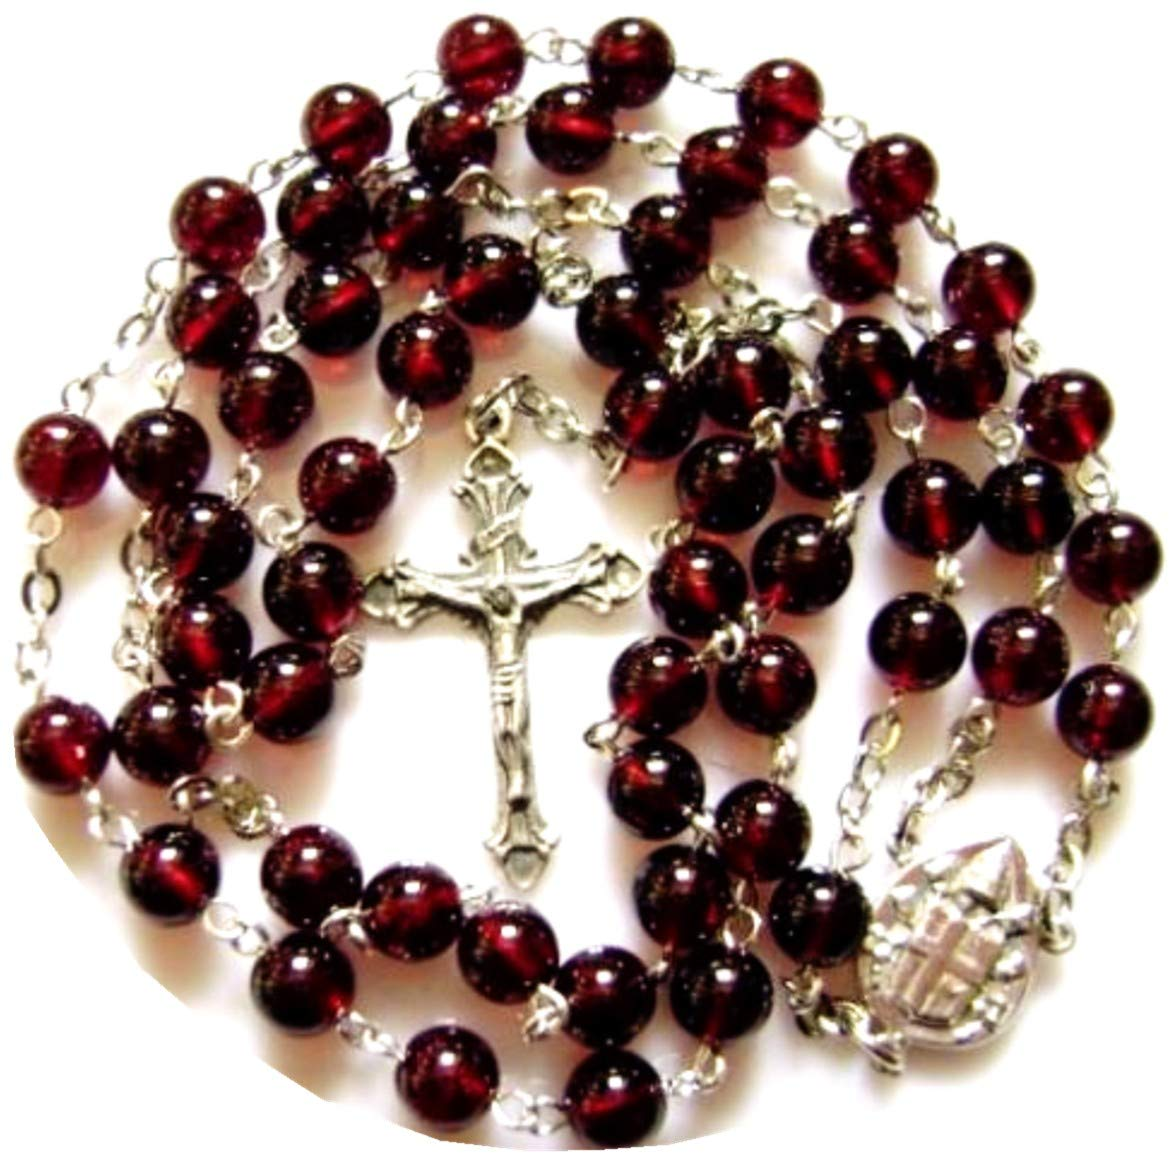 elegantmedical Handmade Garnet Gemstone Bead Catholic Sterling 925 Silver 5 Decade Rosary Cross Crucifix Necklace Womens/Girls